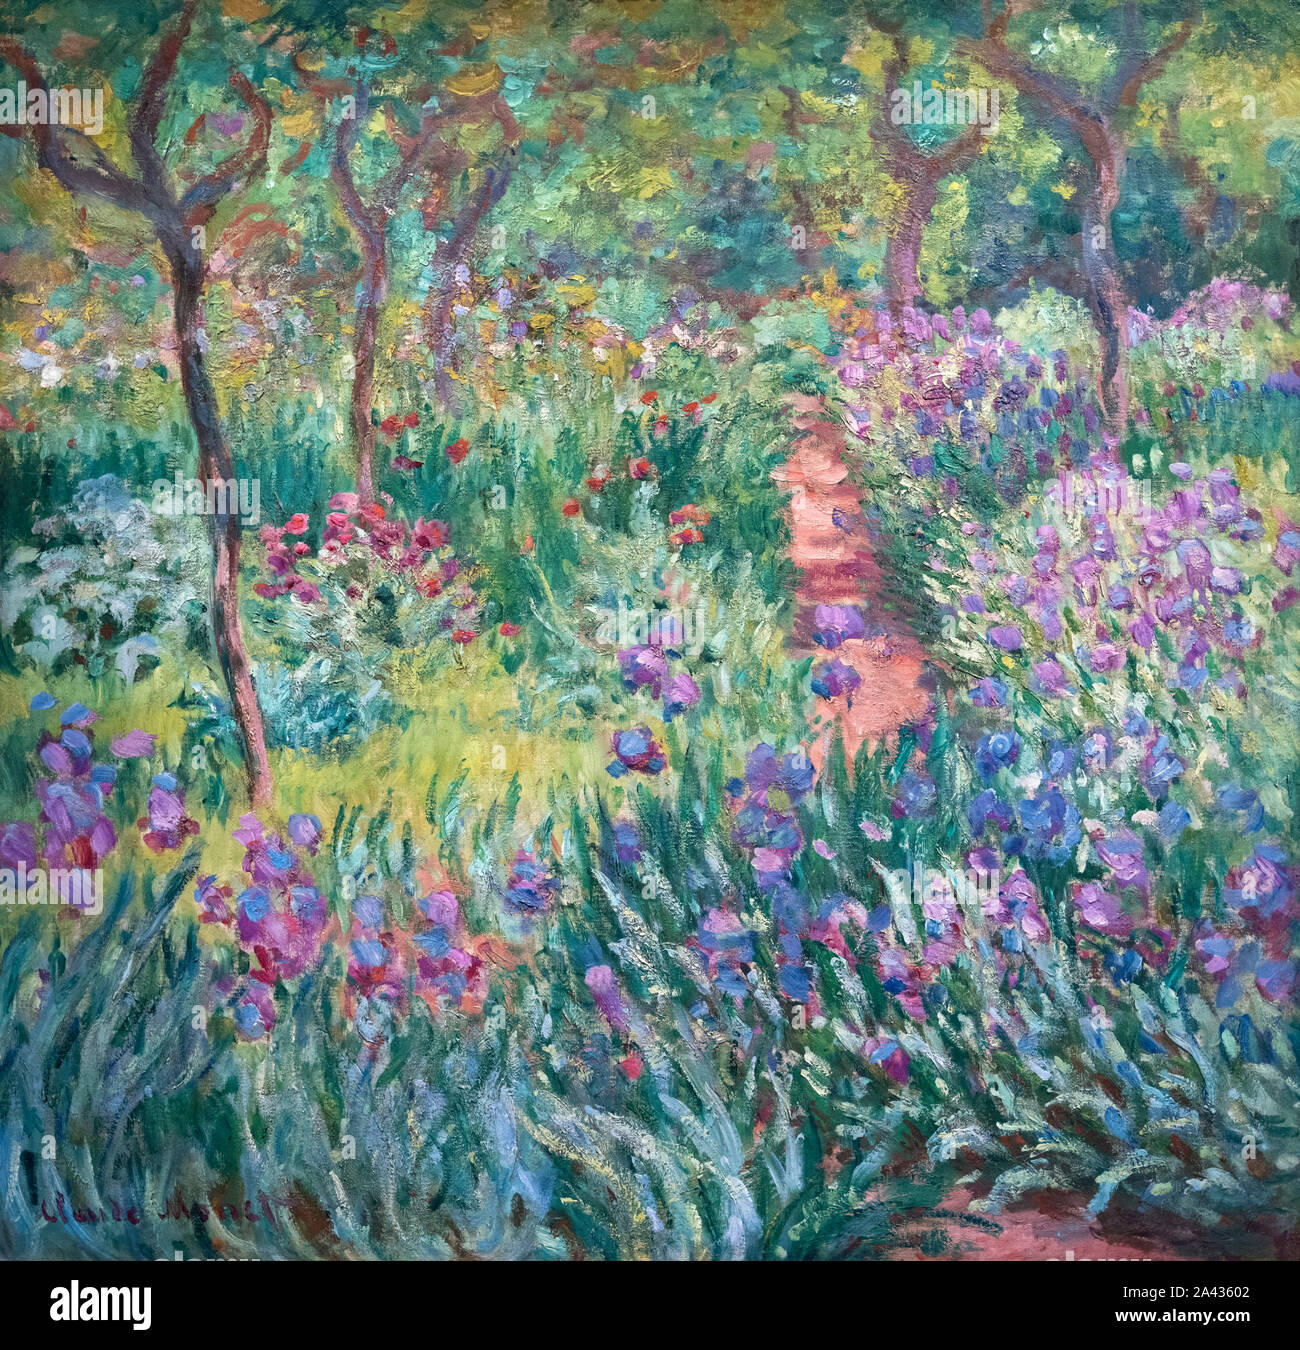 Garden Impressionism Painting High Resolution Stock Photography